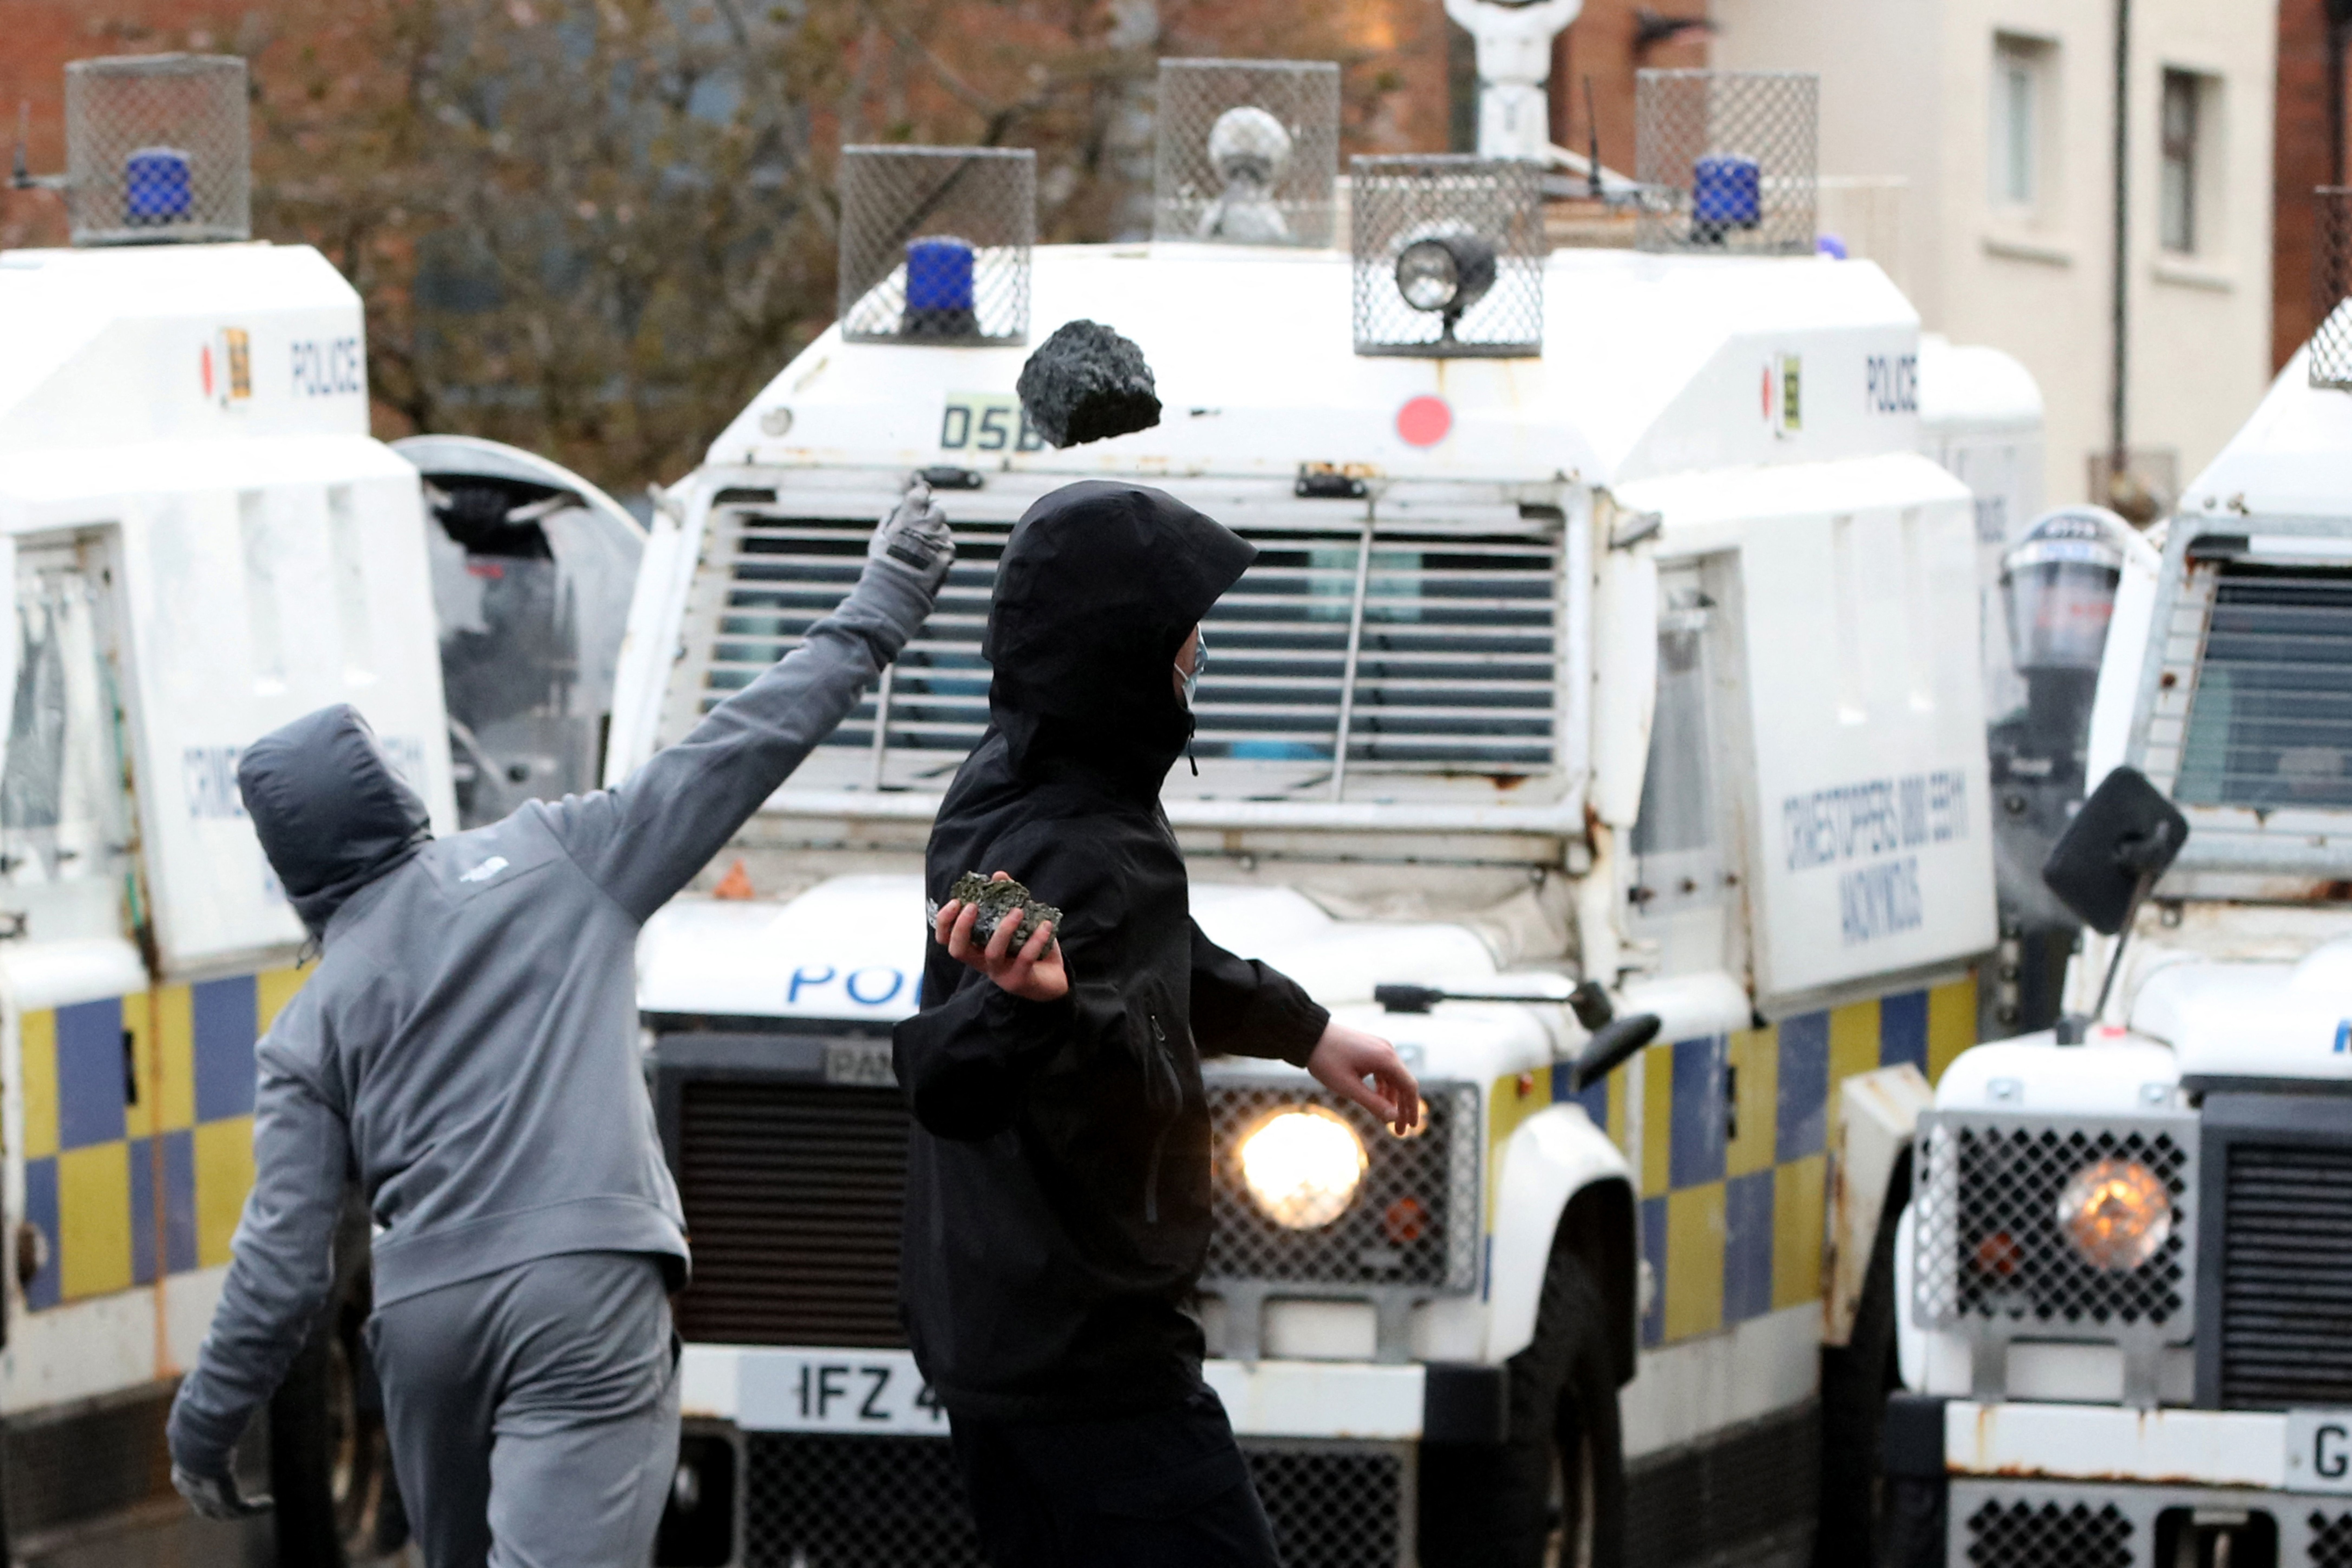 Two people stand in front of a row of security vehicles in Belfast, Northern Ireland. One is throwing an object at the police vehicles.